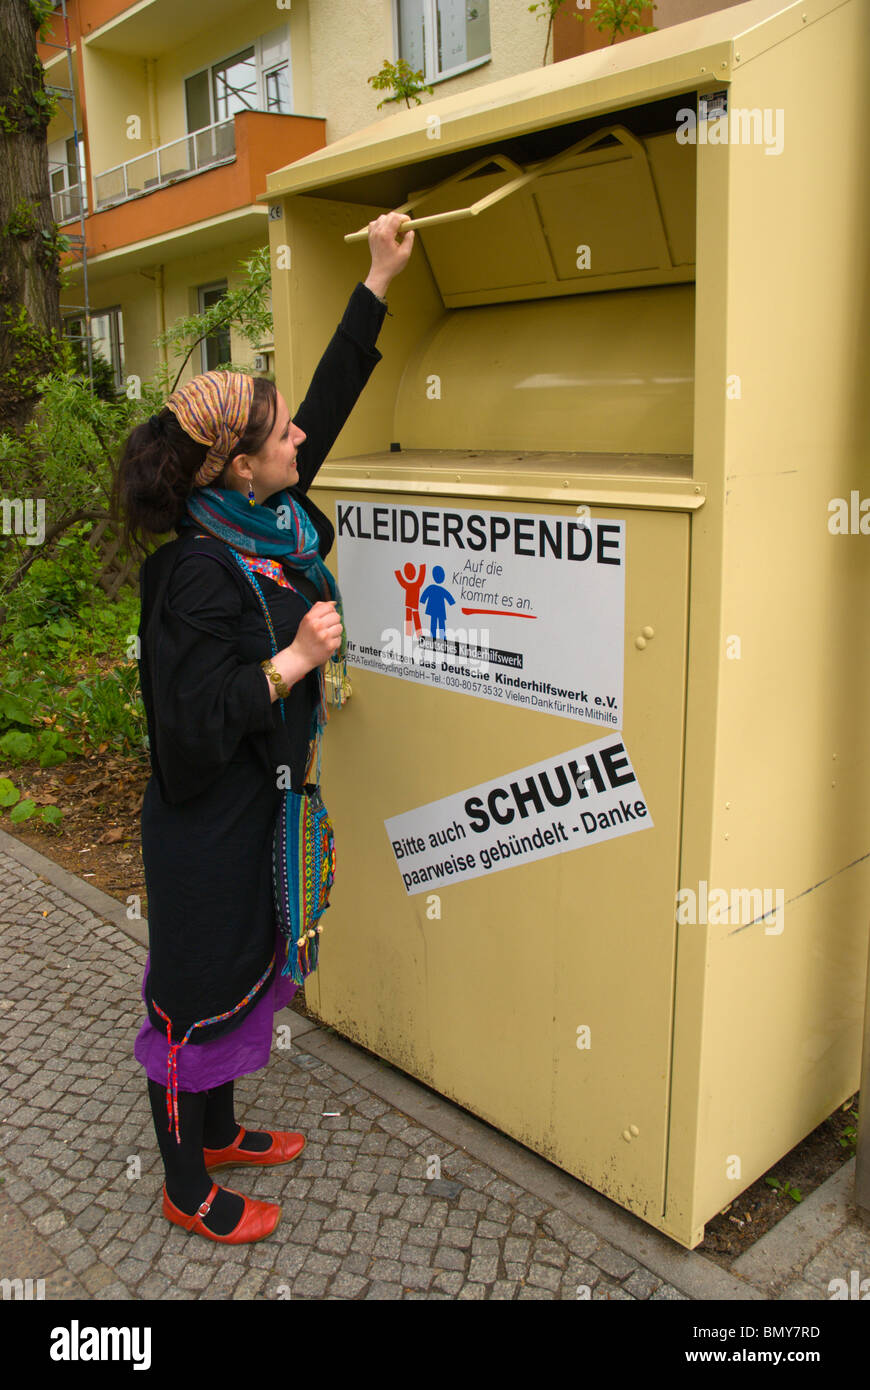 Woman in her late 20s donating clothes Berlin Germany Europe - Stock Image